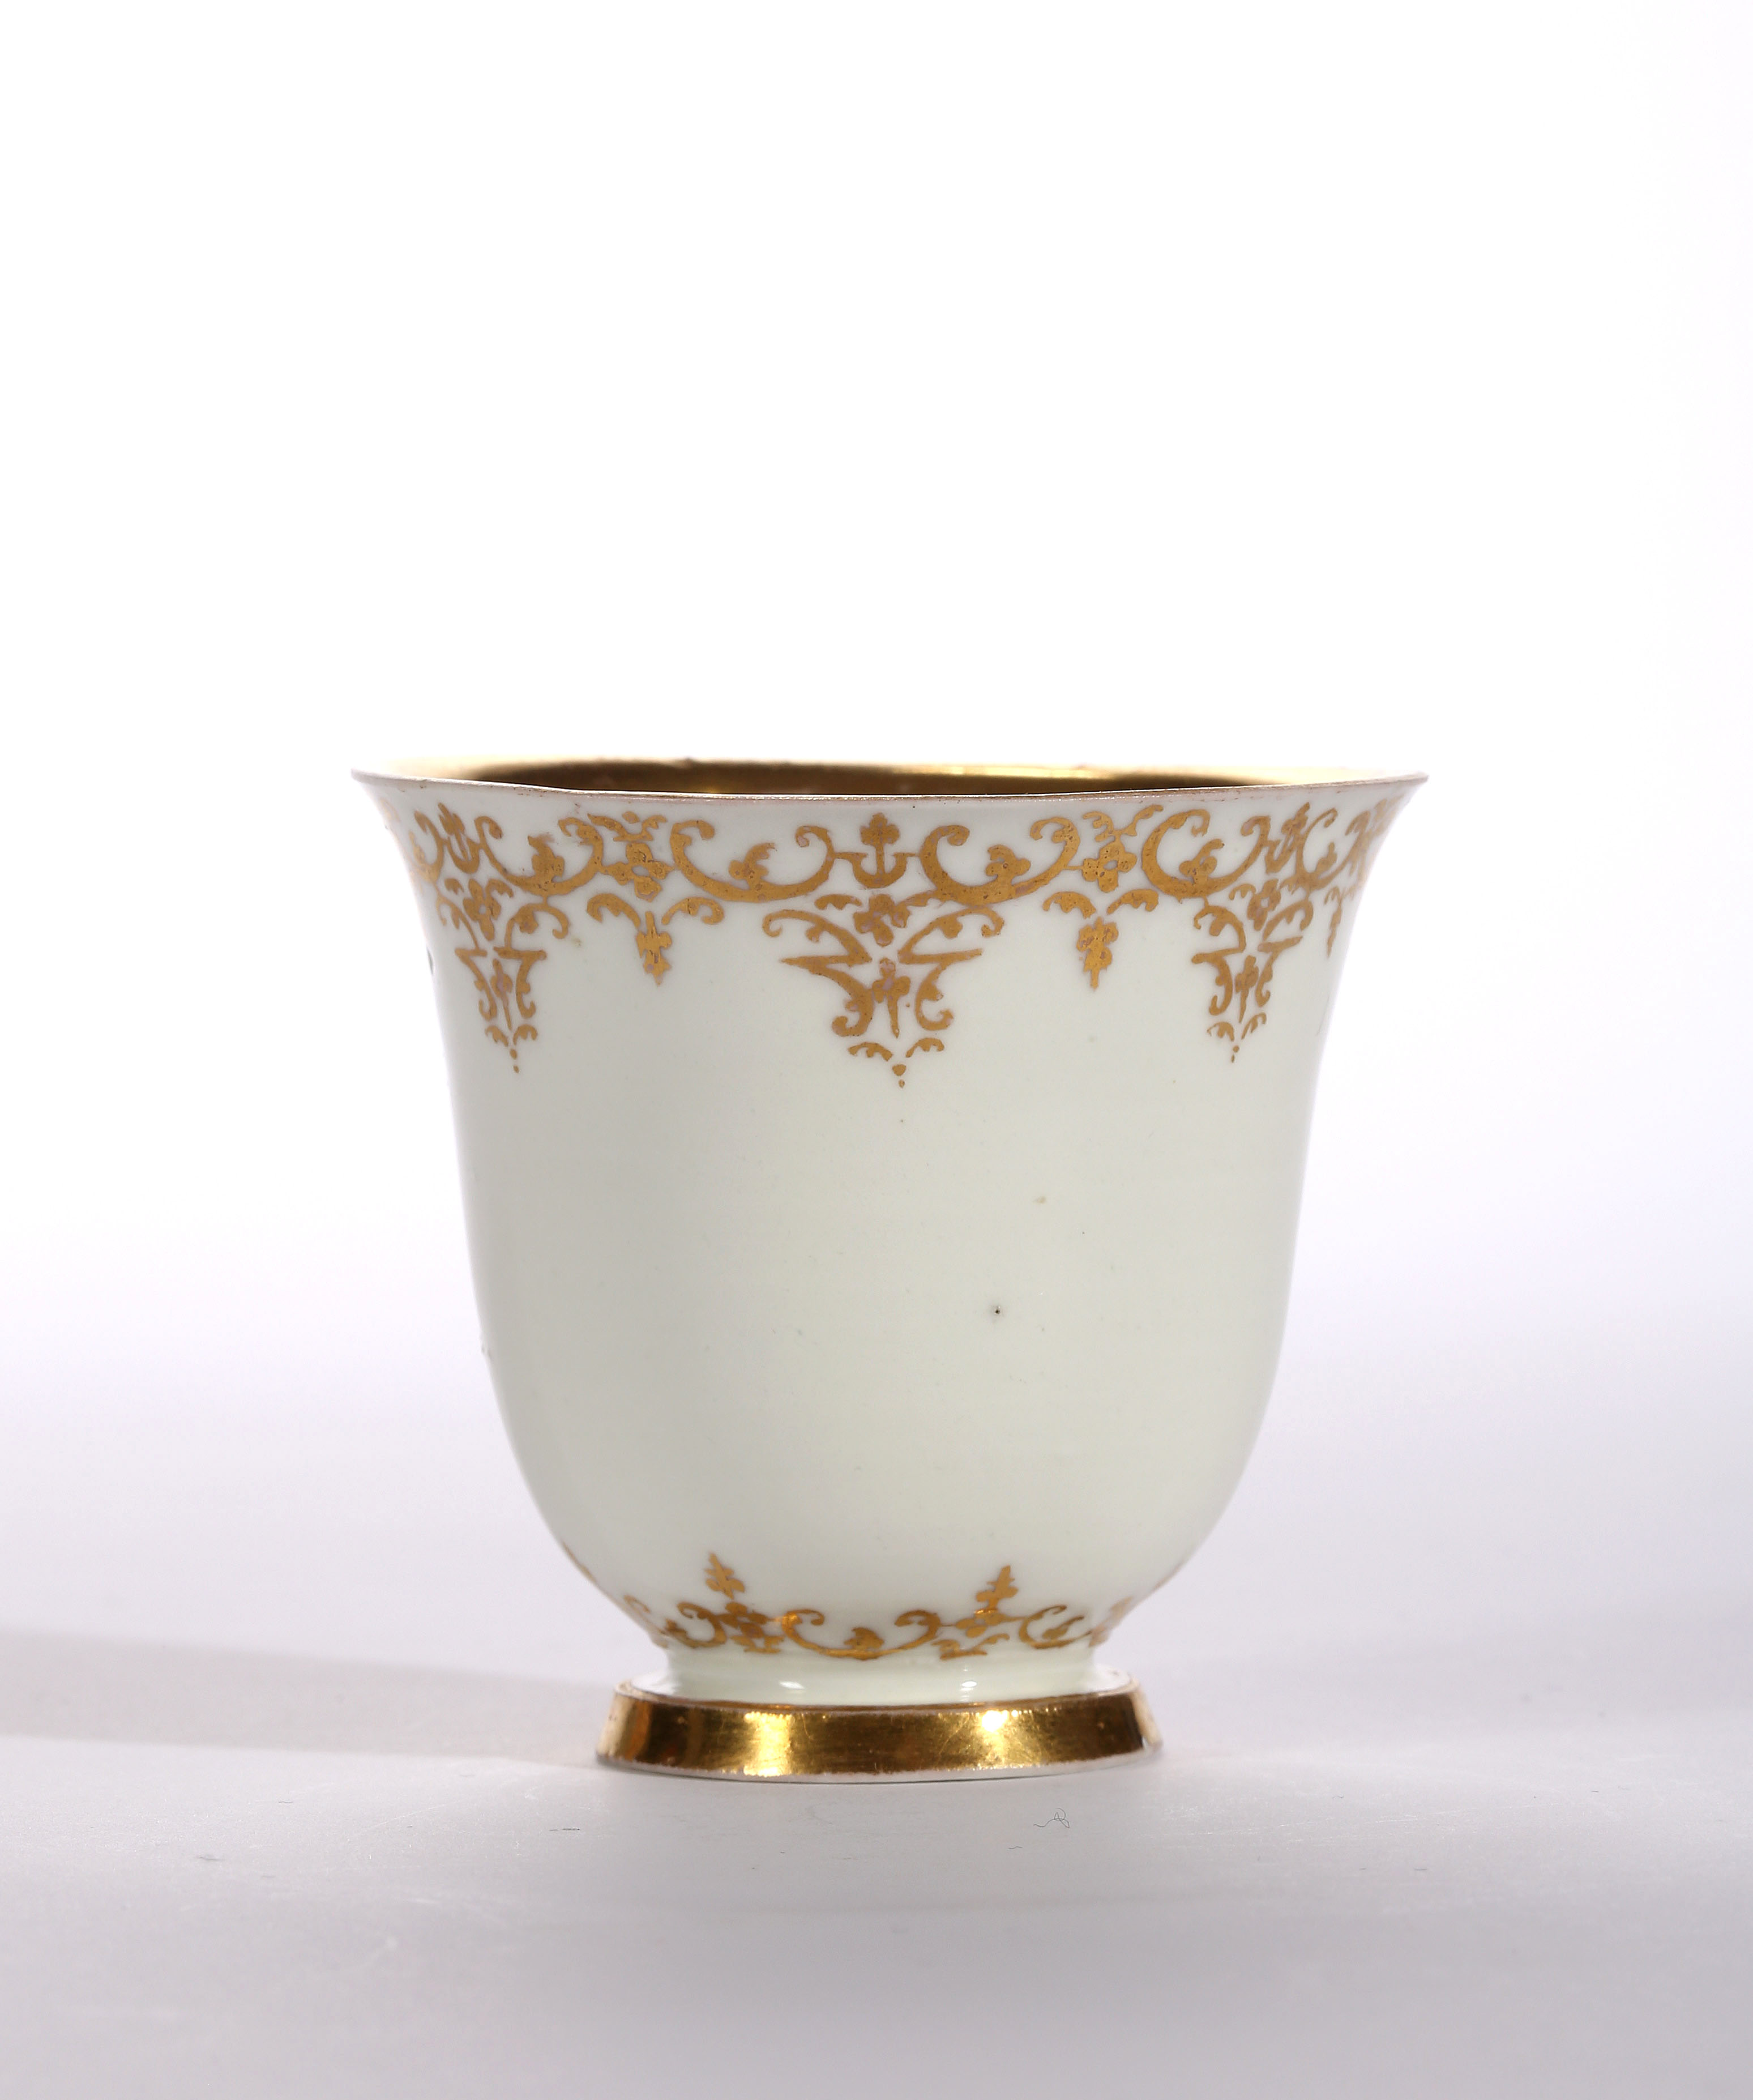 AN EARLY MEISSEN BOTTGER PORCELAIN BEAKER